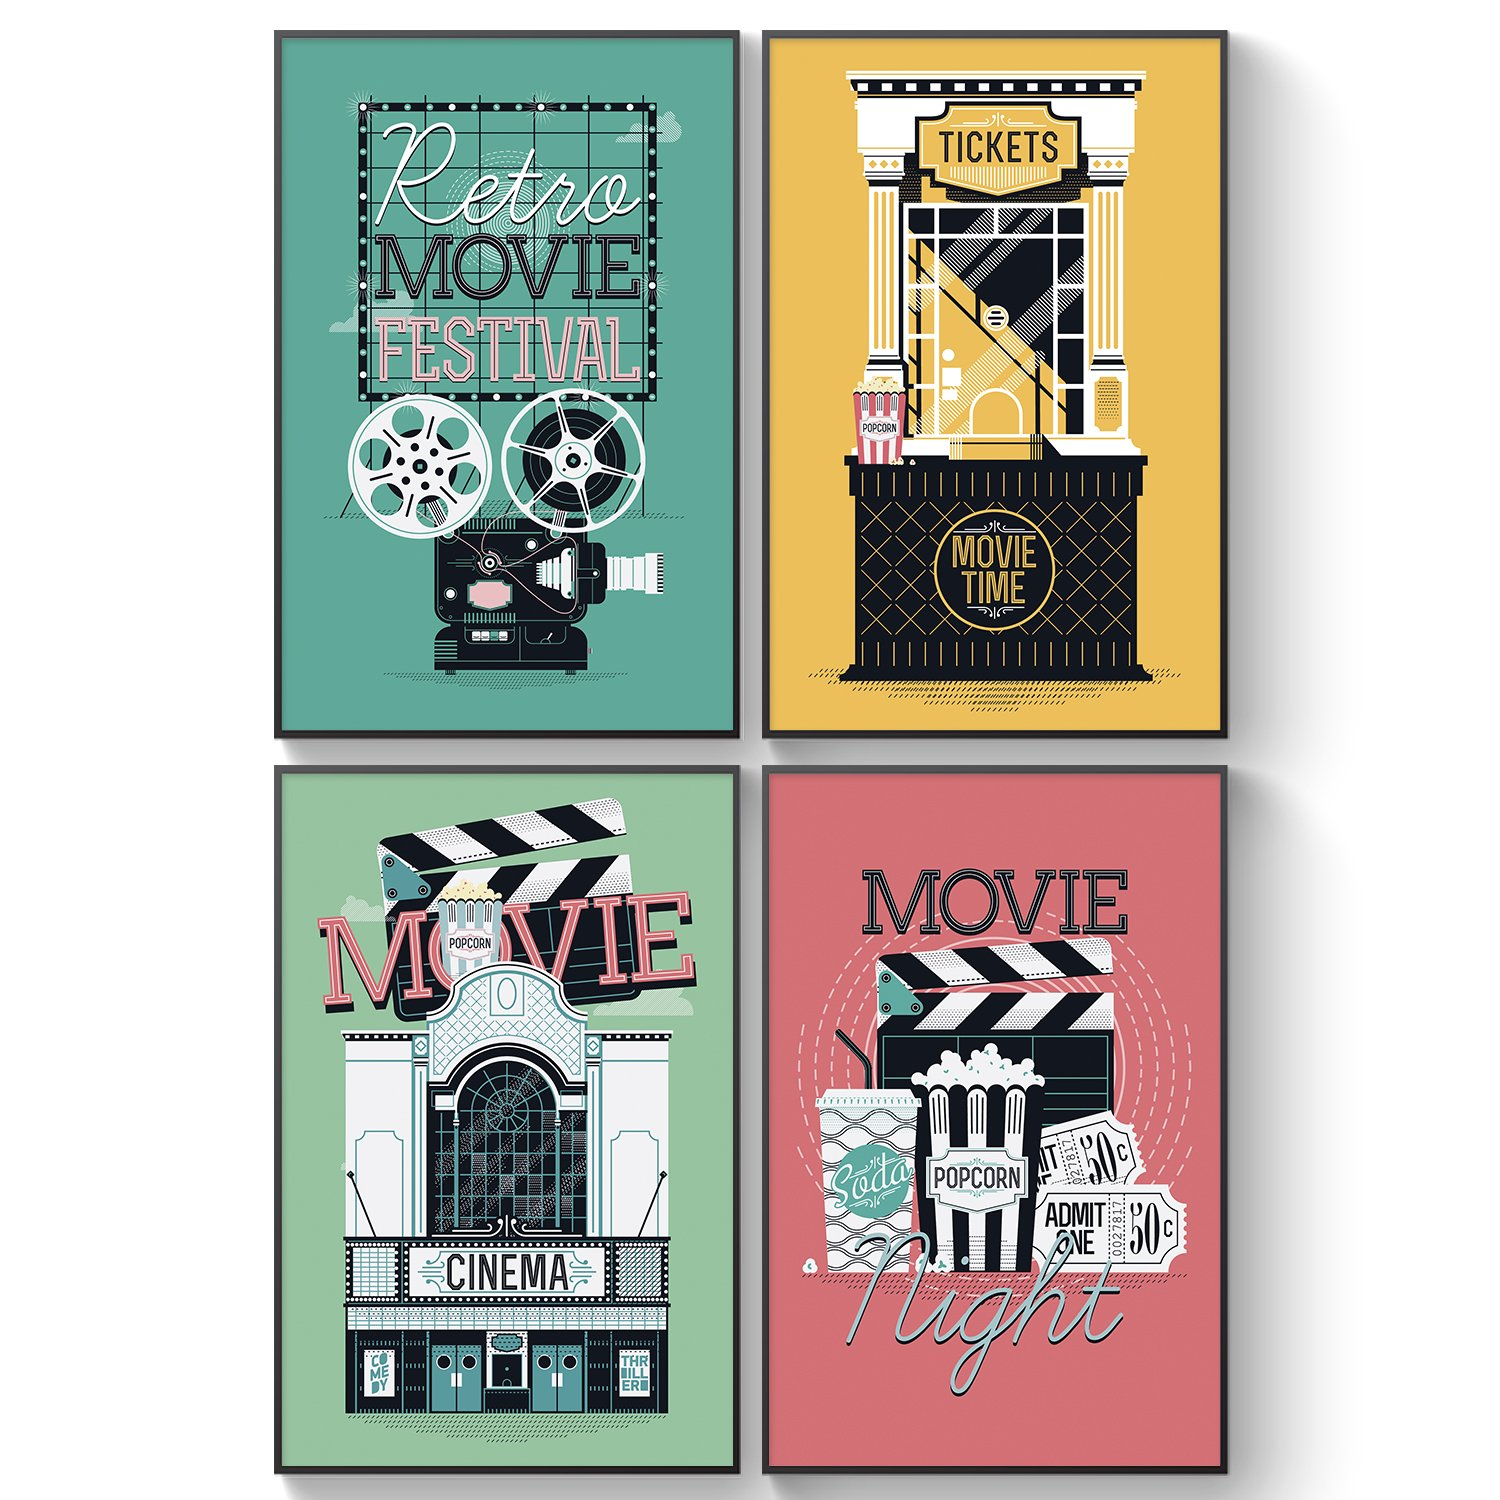 Pillow & Toast Limited Edition: New Classic Movie Poster, Set of Four 11x17, Movie Theater Wall Decor, Home Theaters Wall Art Prints, Classic Movie Poster Ready to Place On Wall.